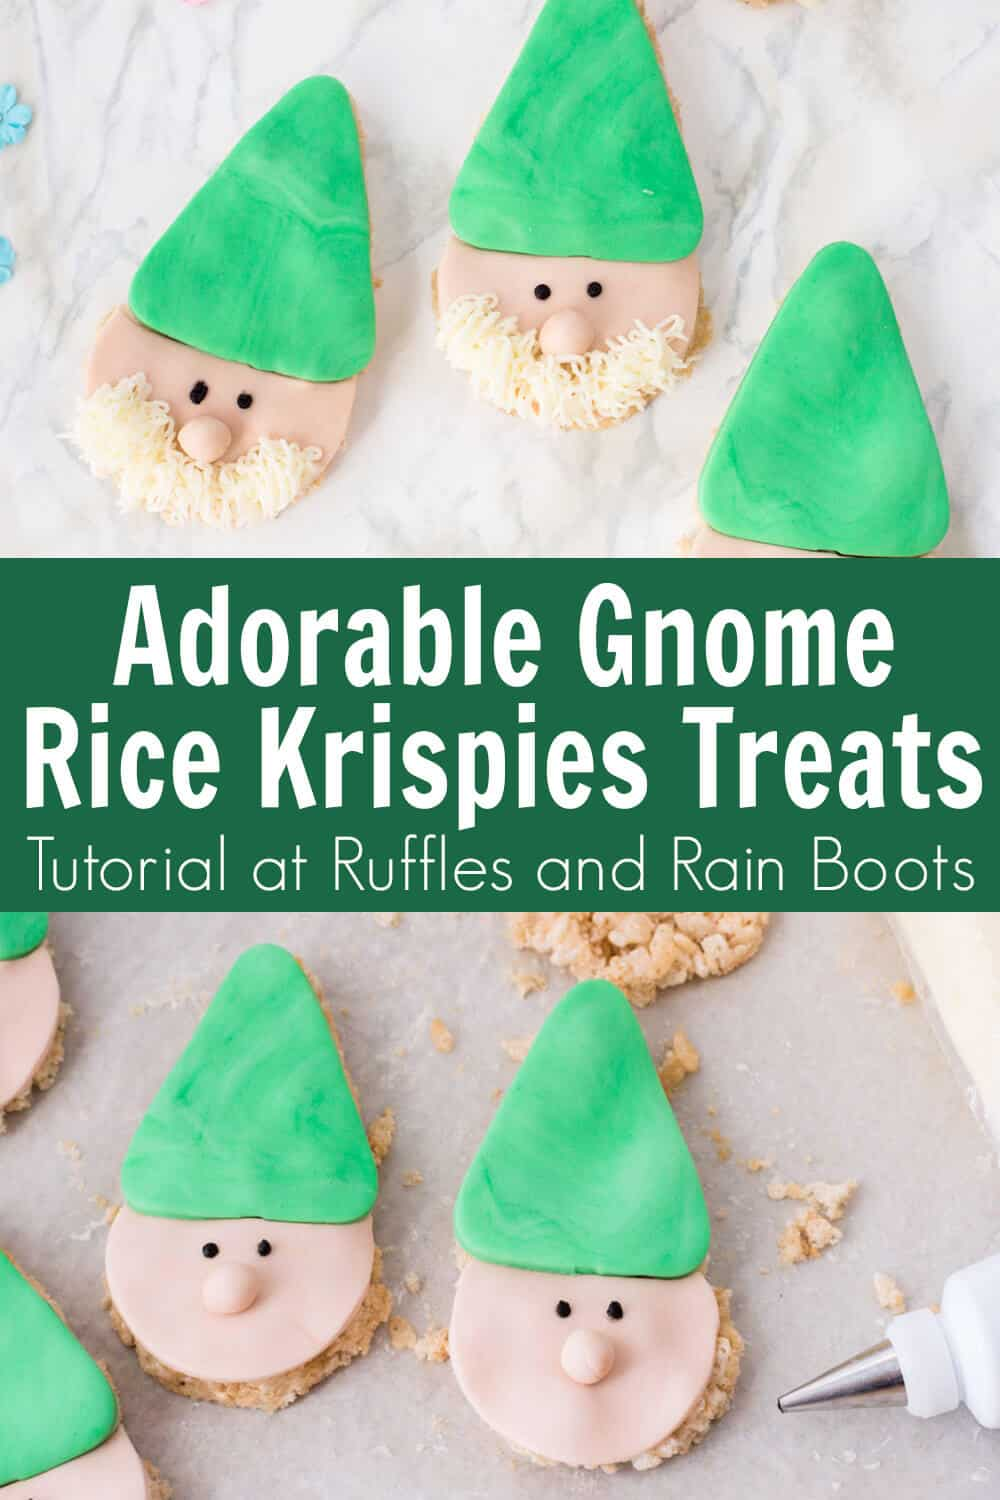 photo collage of adorable gnome rice krispies with text which reads adorable gnome rice krispies treats